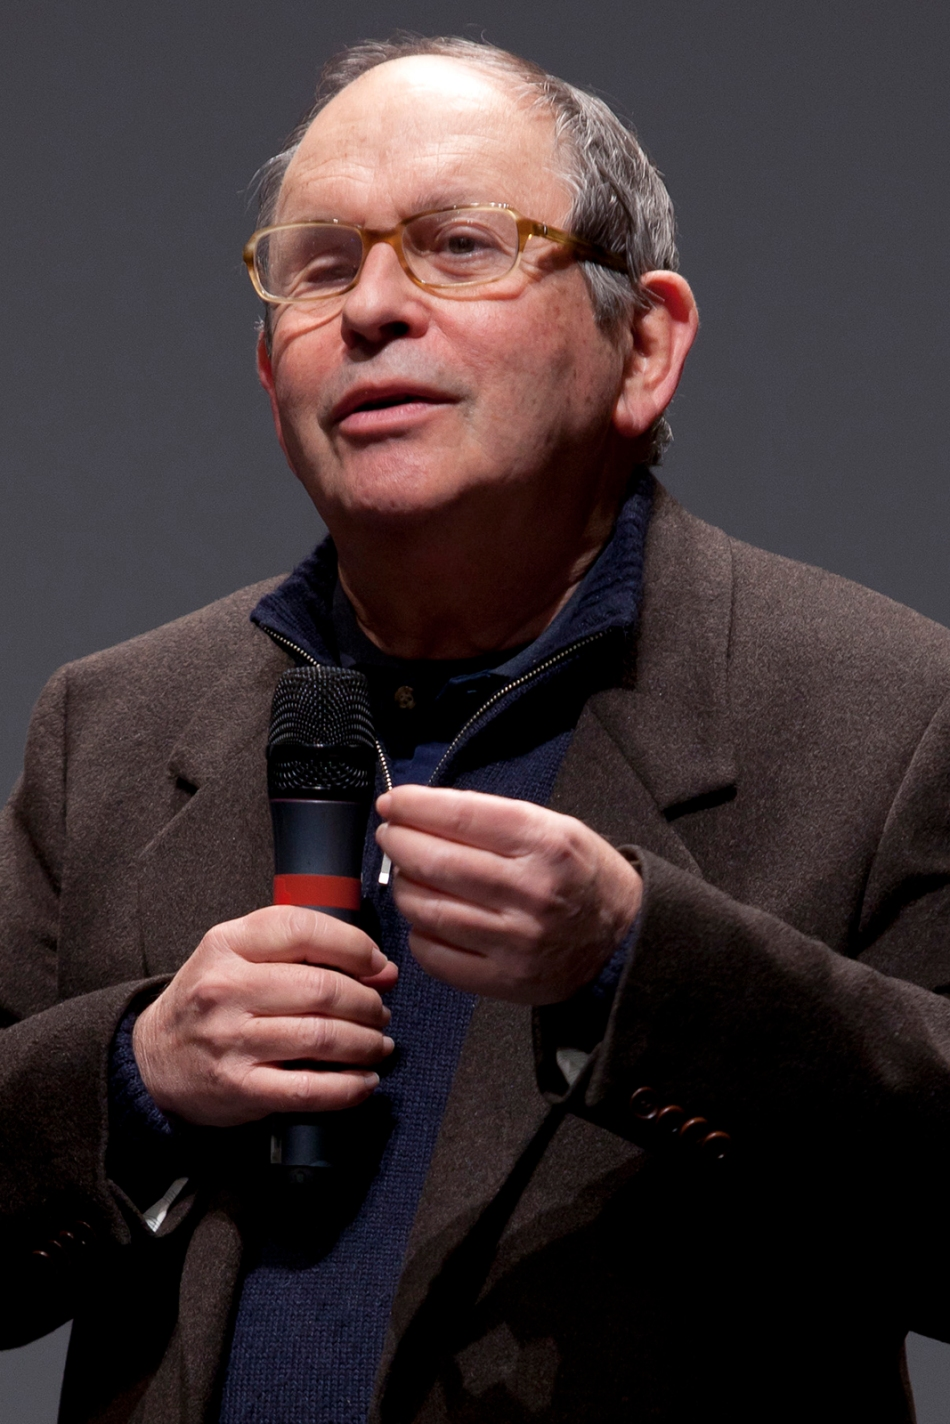 Theatrotheque-N2_Jean-Claude-GRUMBERG_23-02-2012_GCC_033_web